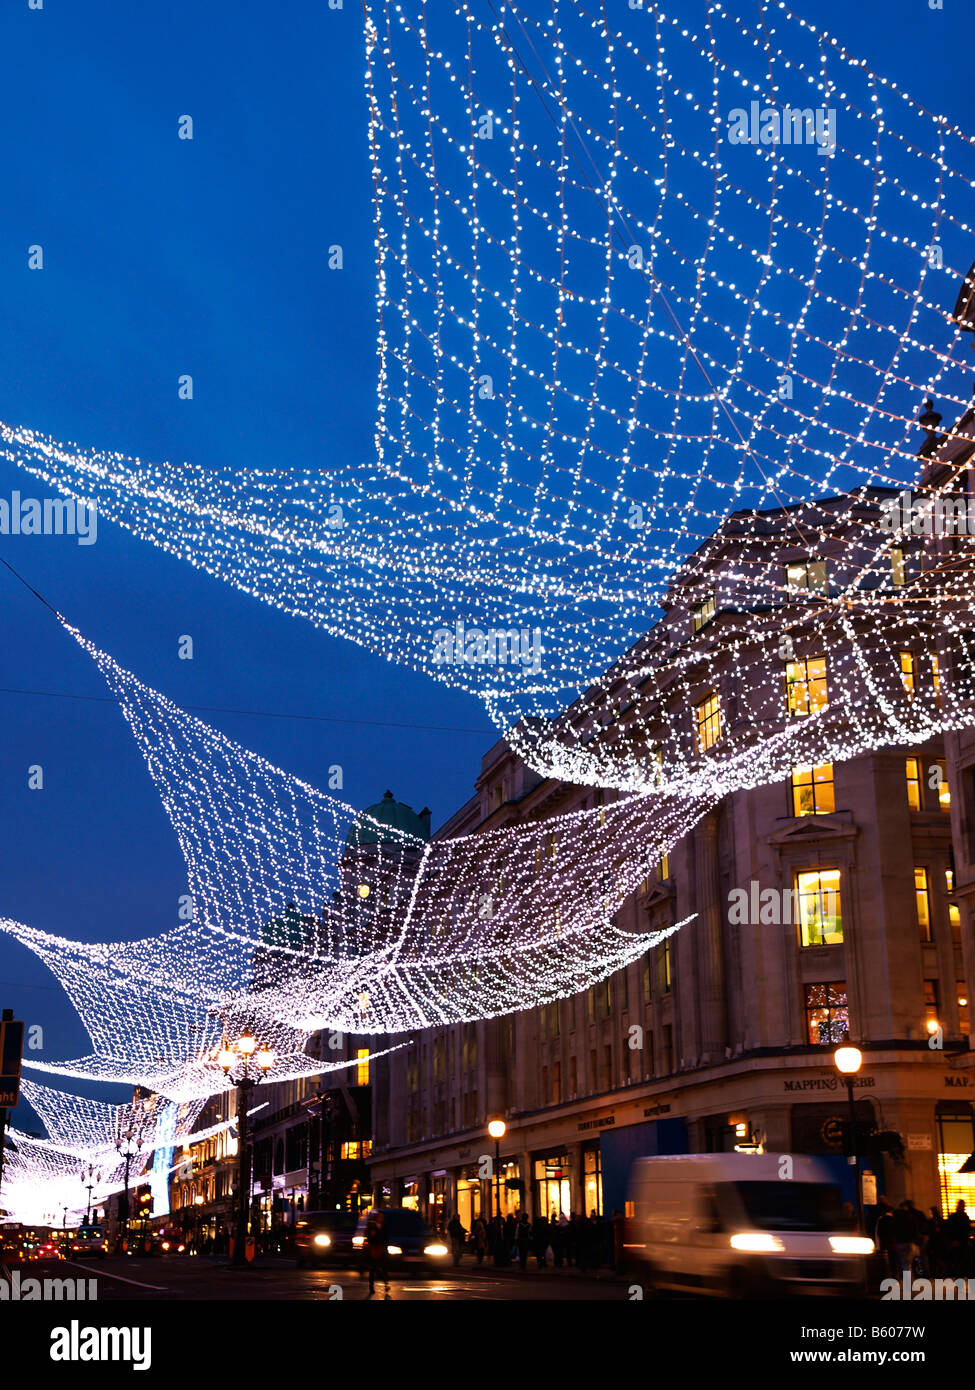 Christmas lights Regent Street London. For the 2008 - 2009 holiday season. - Stock Image